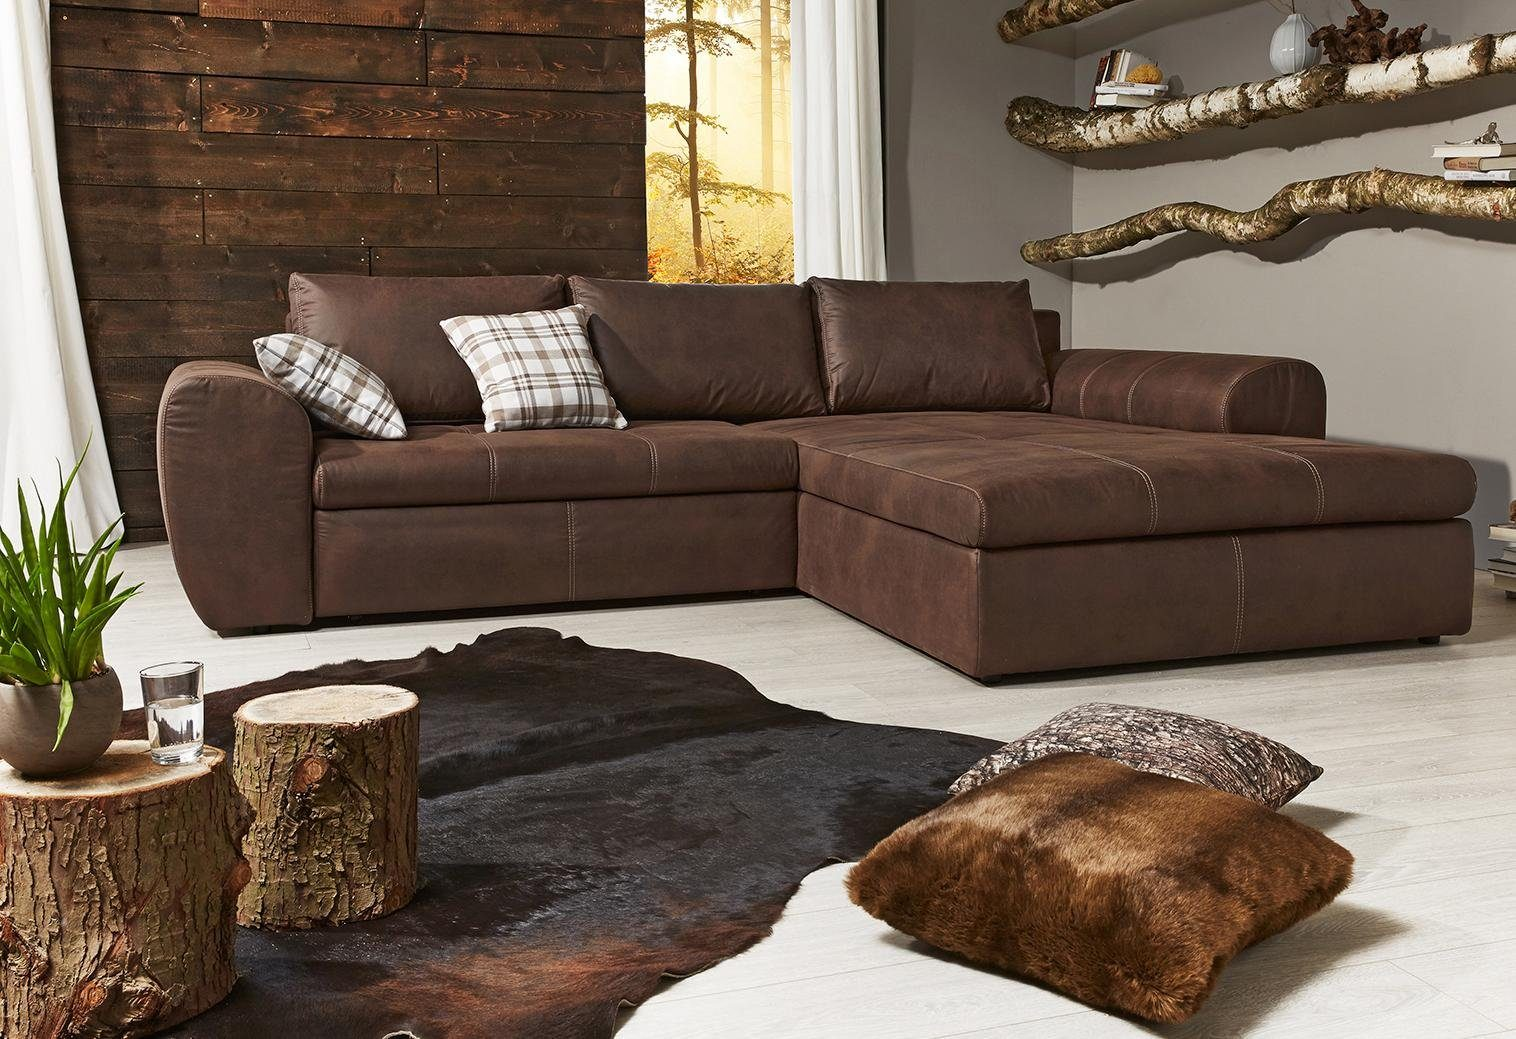 Home affaire Ecksofa mit Bettfunktion